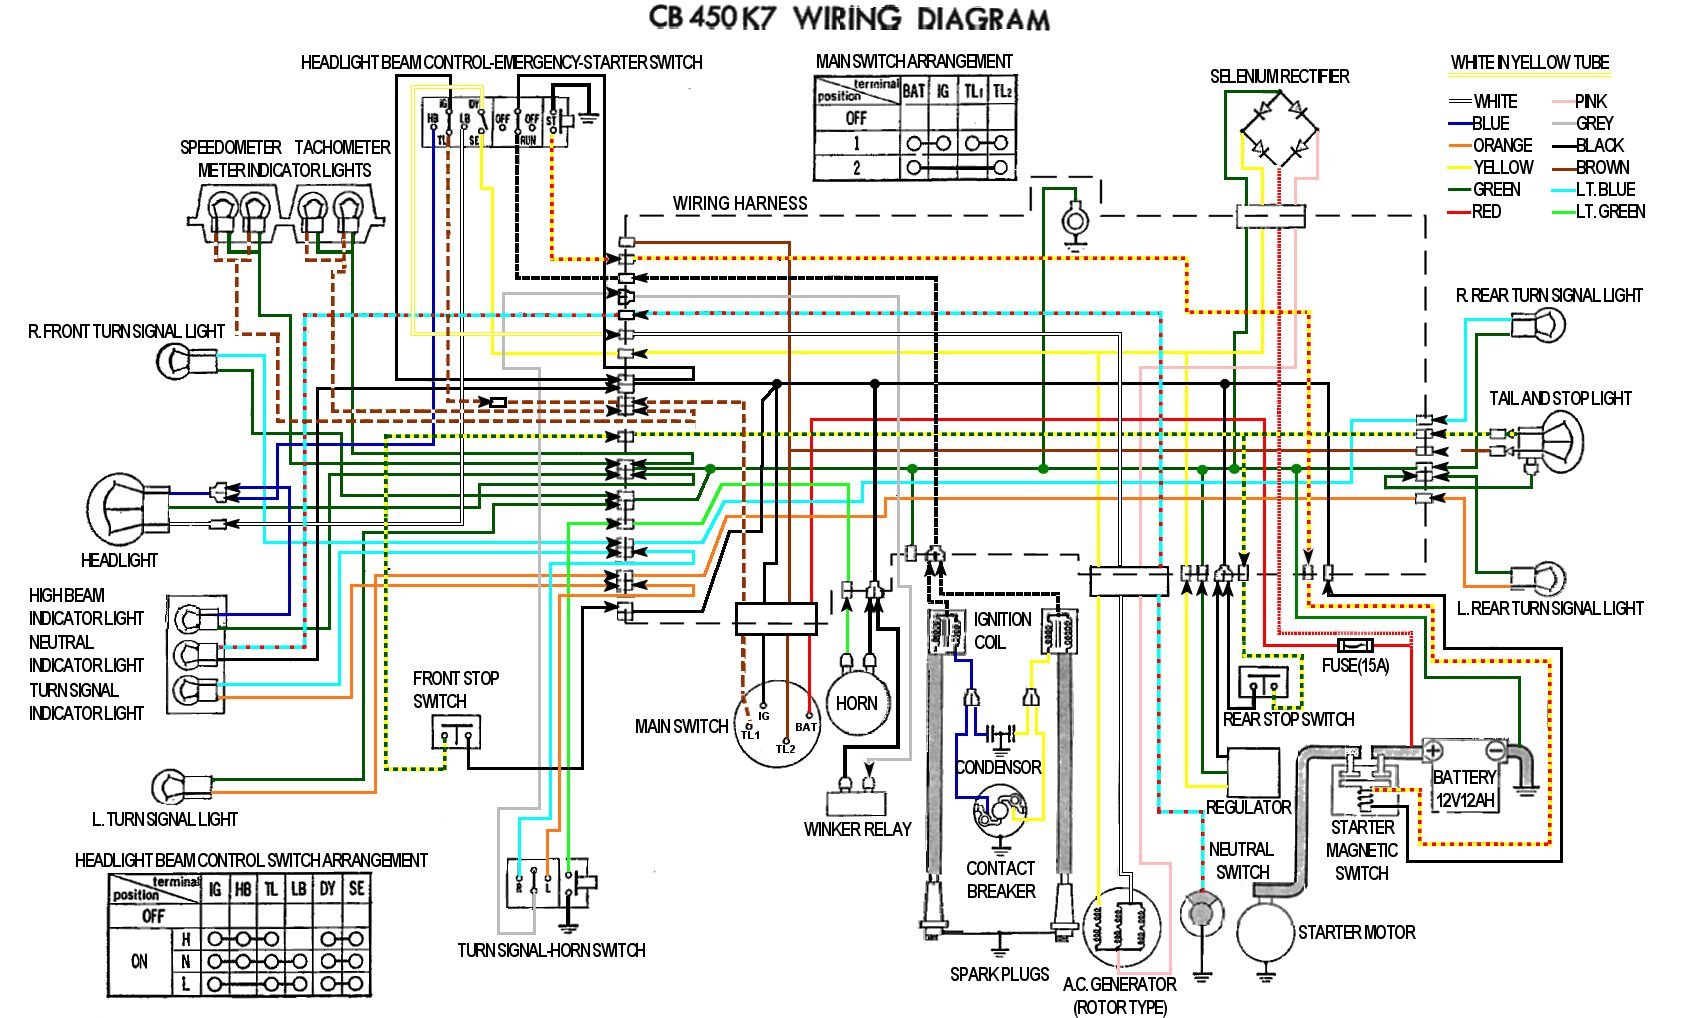 84 Honda Xr200 Wiring Diagram Library Xr200r On Stator 4 Wire Regulator Cb450